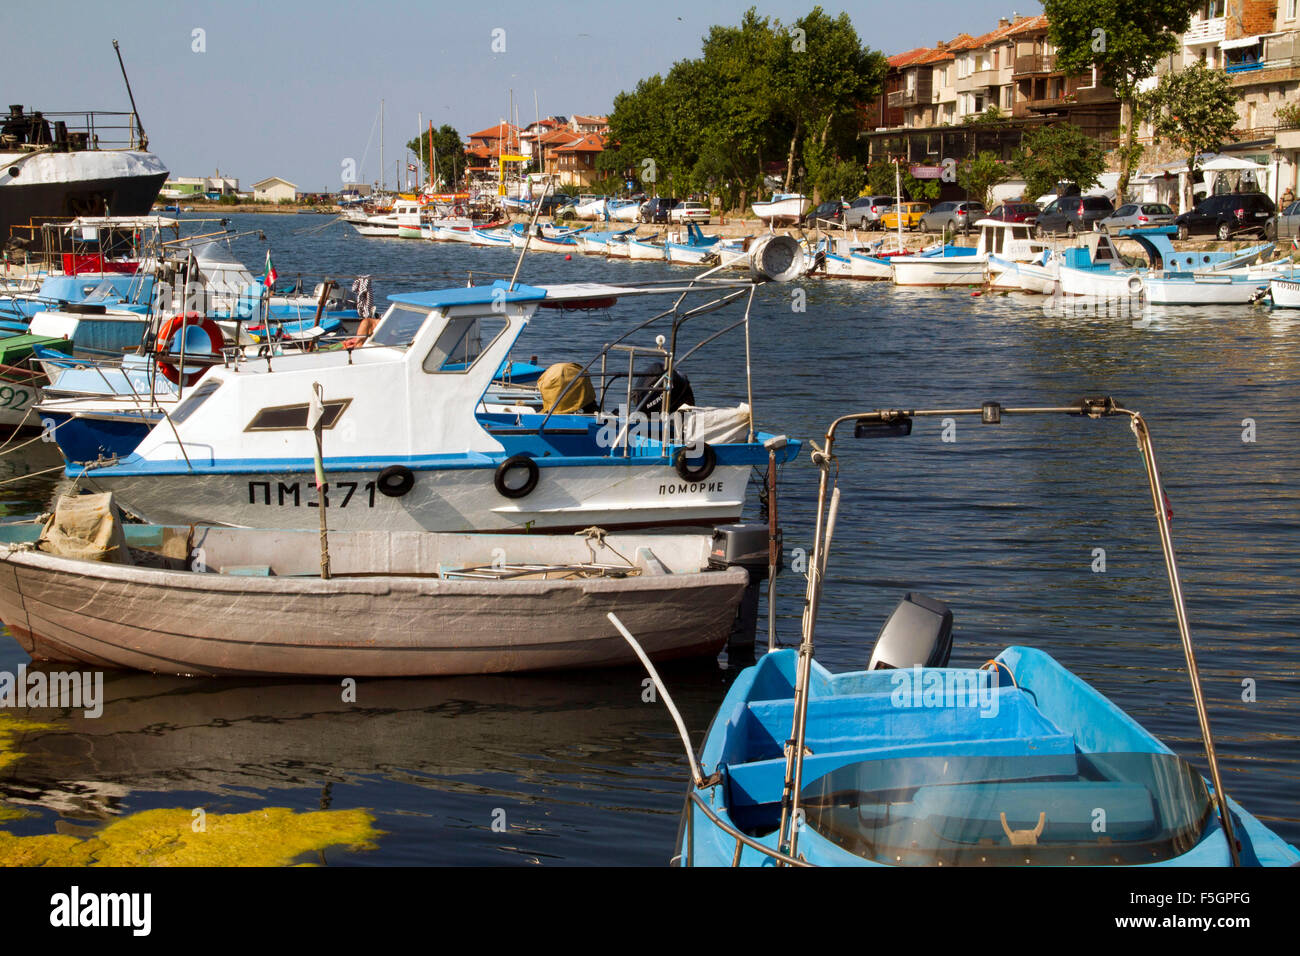 A picture or image of river boat or sea boat moorings. - Stock Image